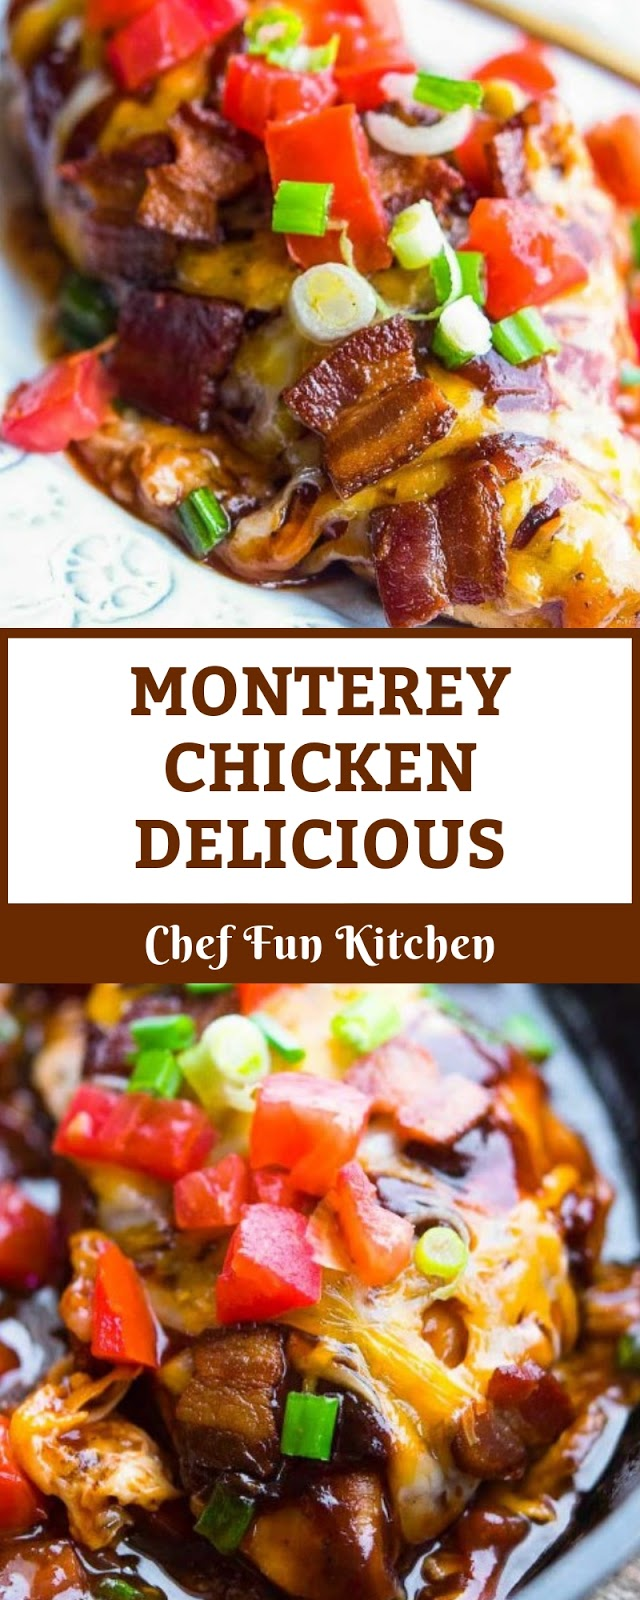 MONTEREY CHICKEN DELICIOUS